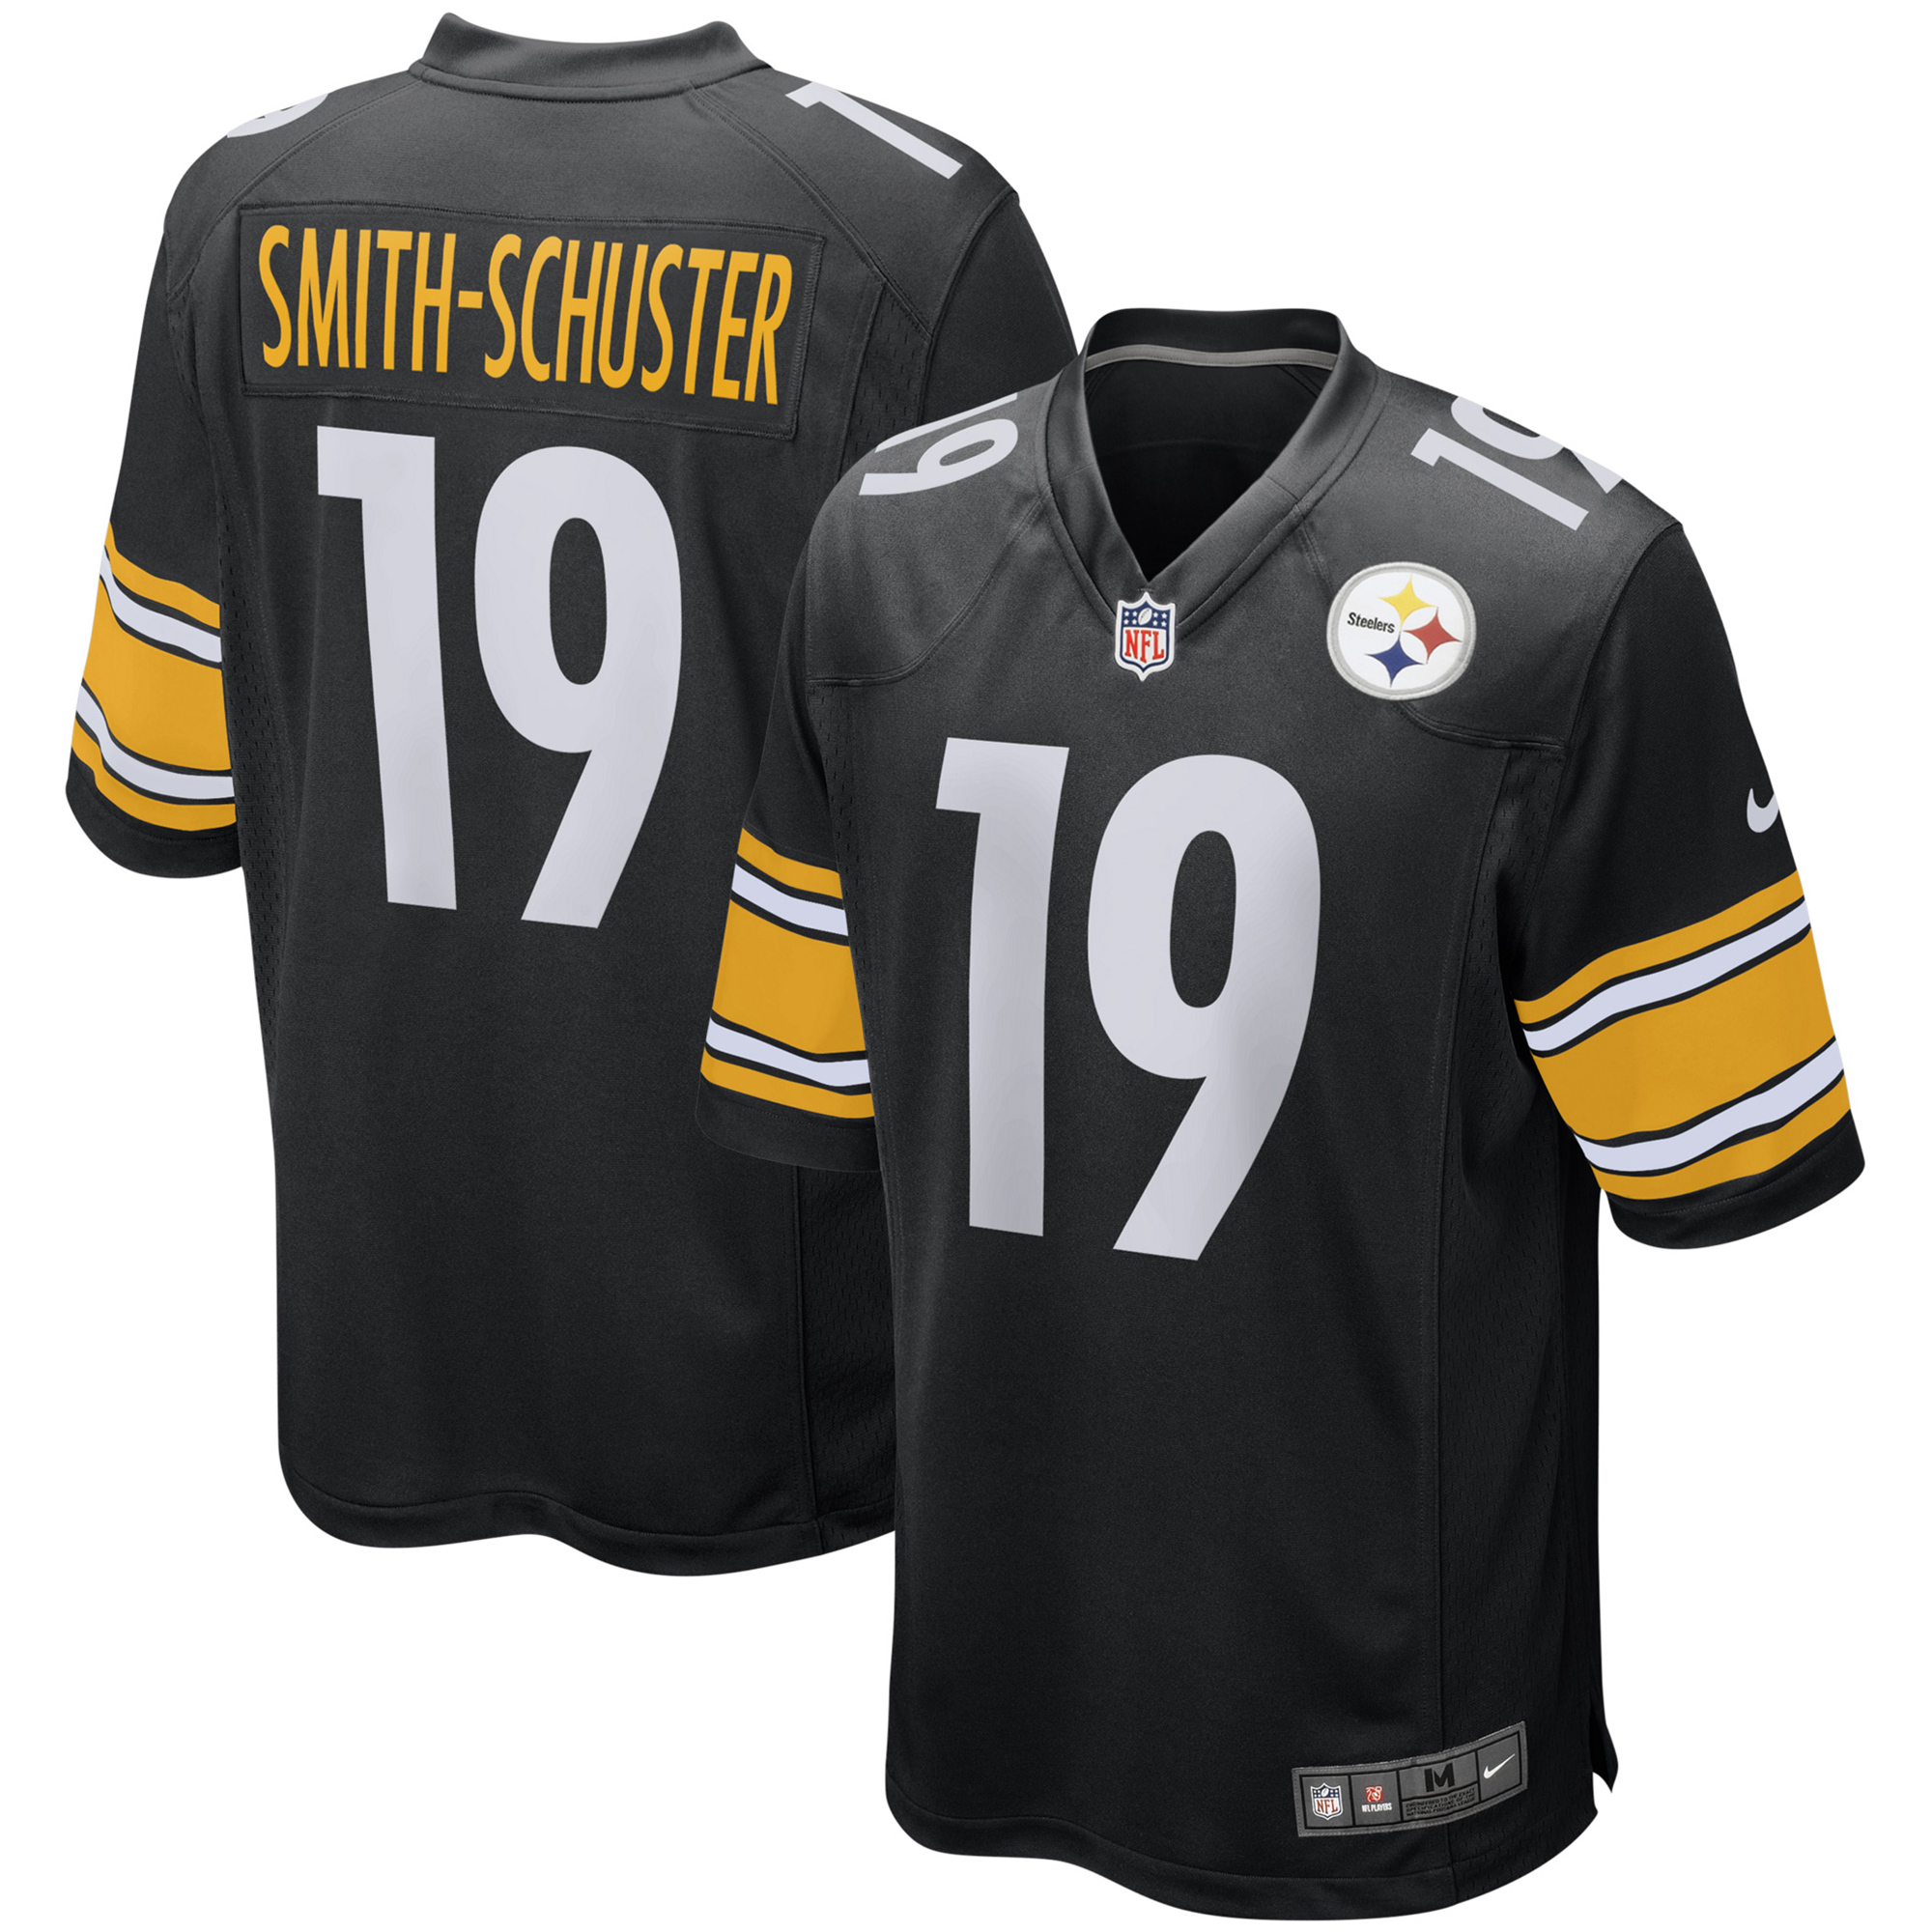 hot sale online 6d2a6 ac6d9 JuJu Smith-Schuster Pittsburgh Steelers Nike Game Jersey